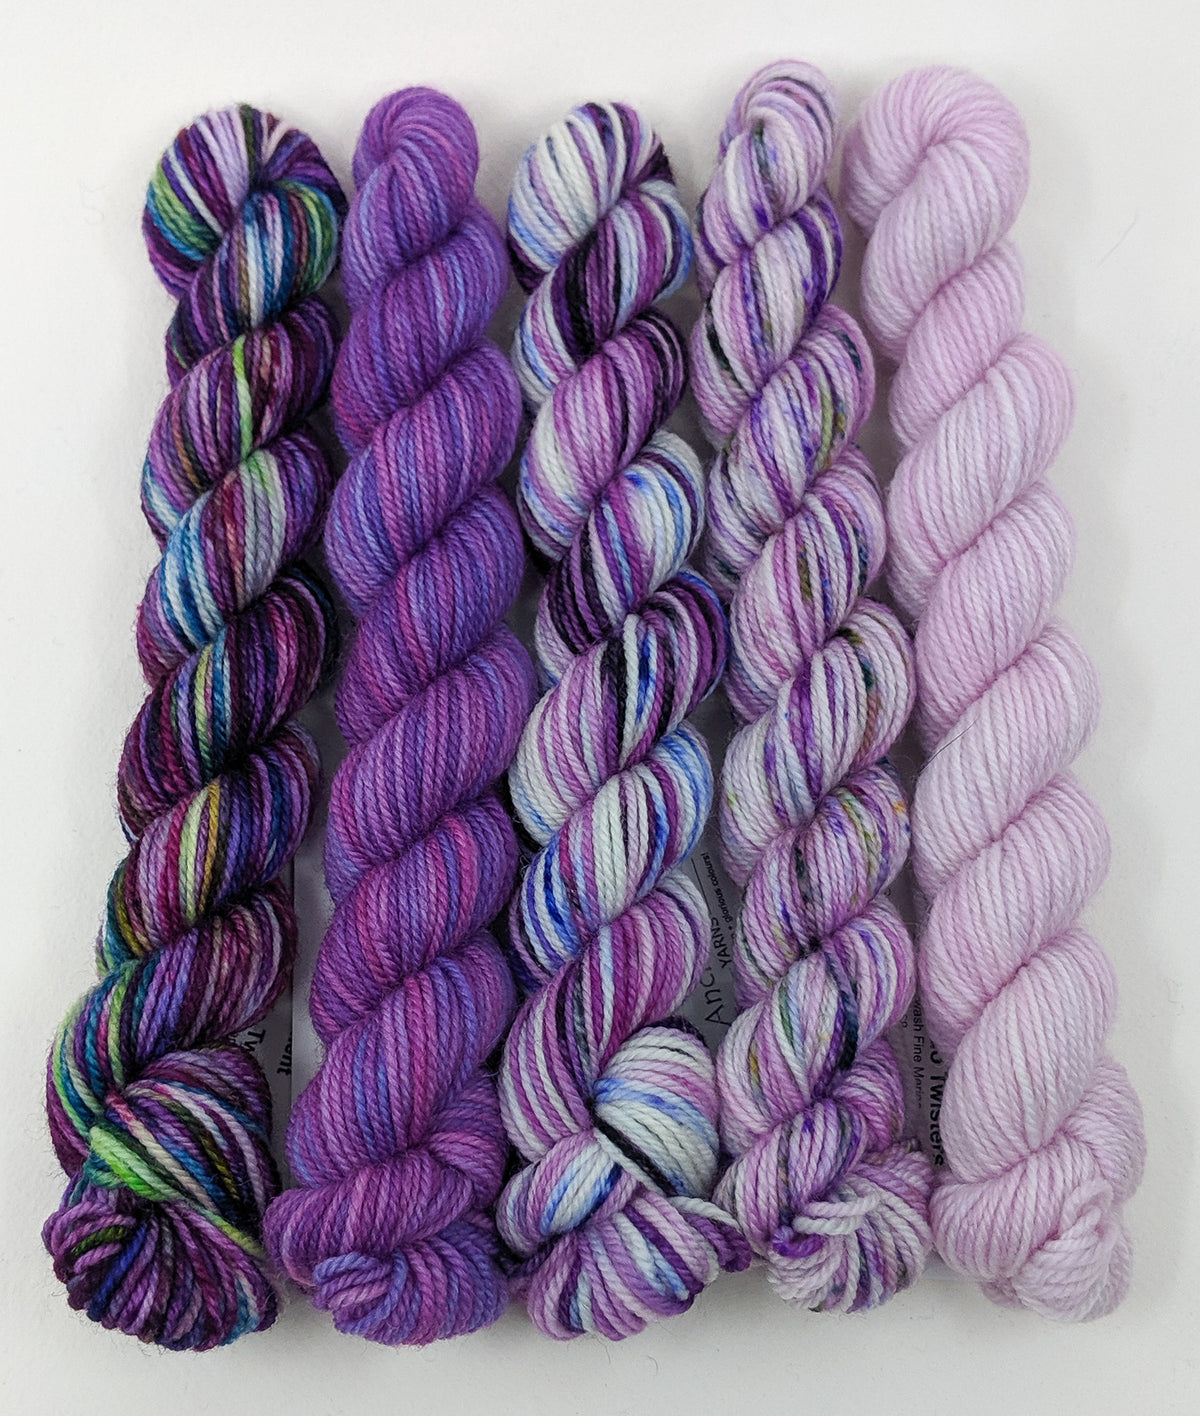 Socknado Twisters Mini Skein Kit - Custom Kit 20